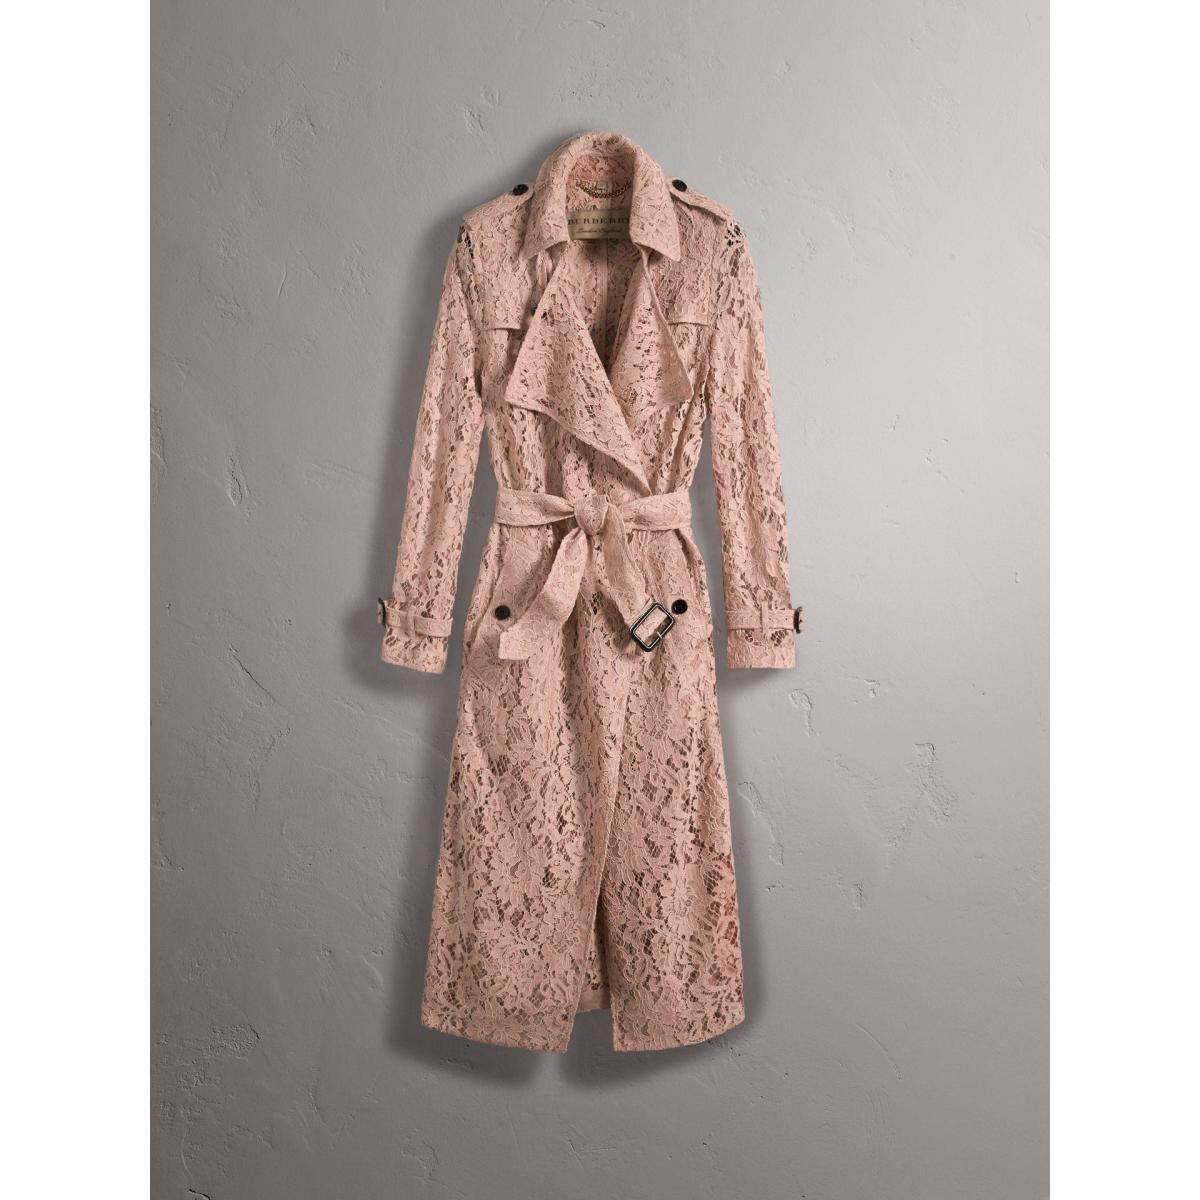 Macramé Lace Trench, $2,895, available at Burberry.